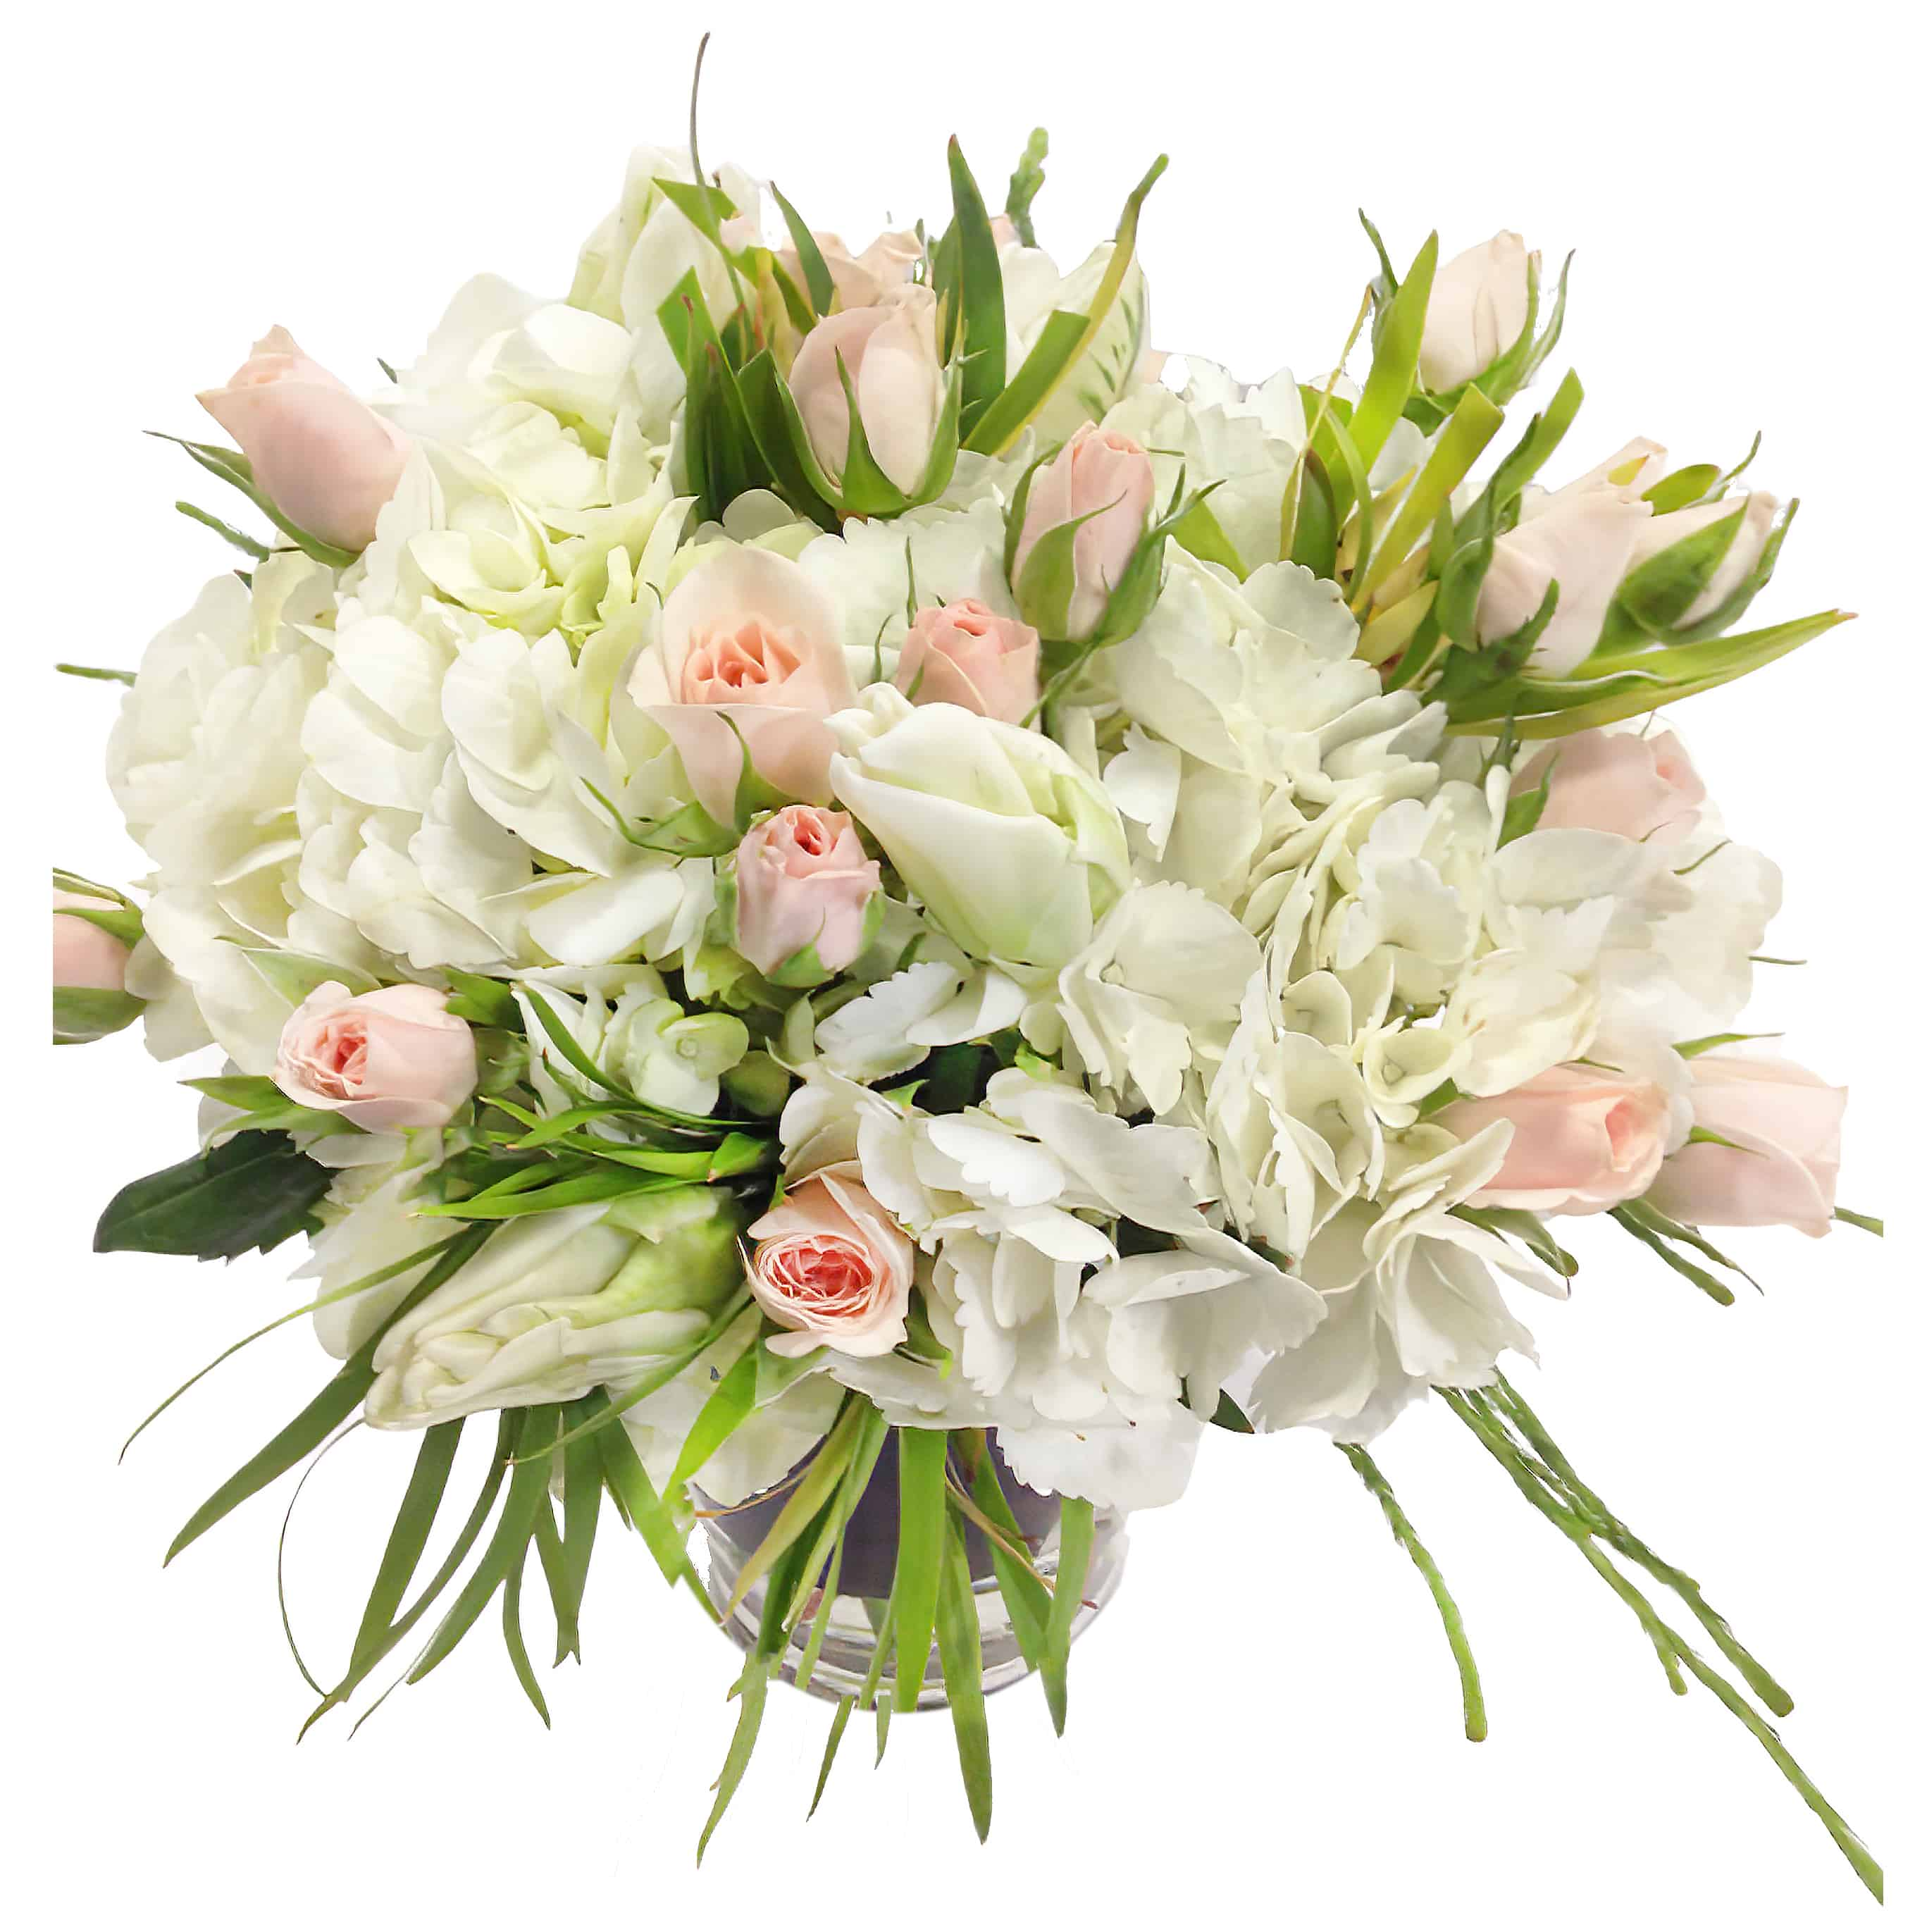 Desiderio Romantico Flower Arrangement